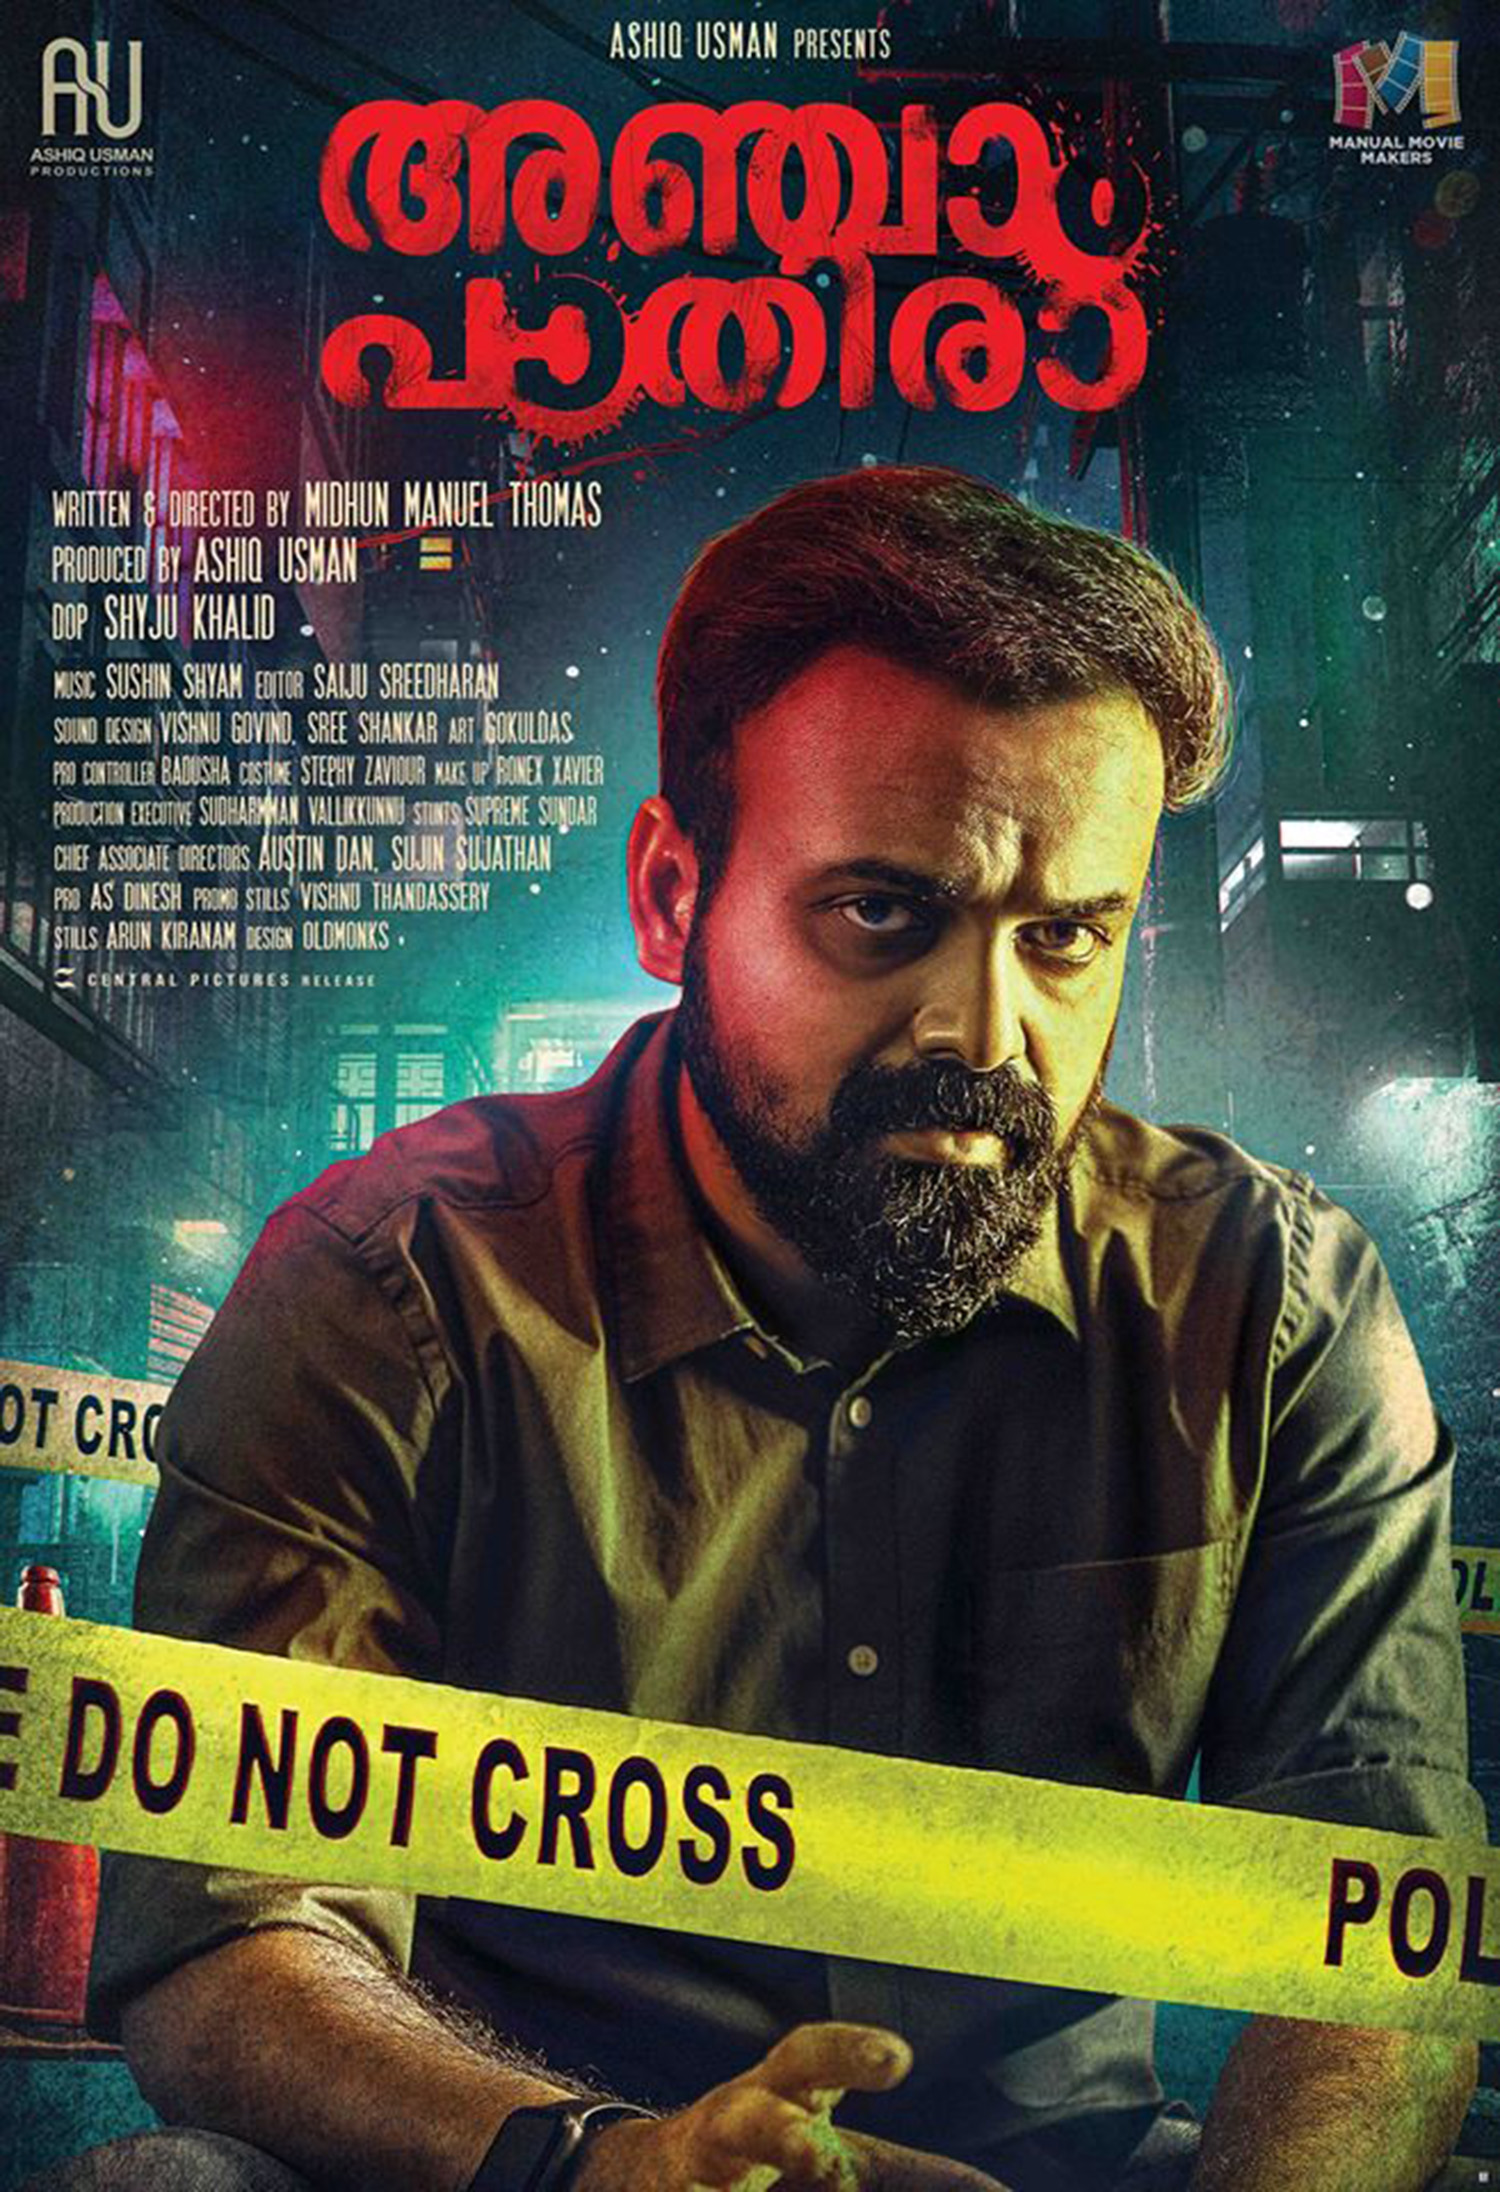 Anjaam Pathiraa Movie,Anjaam Pathiraa reviews,Anjaam Pathiraa ratings,Anjaam Pathiraa malayalam movie review,Anjaam Pathiraa review,Anjaam Pathiraa hit or flop,kunchacko boban,kunchacko boban new movie,kunchacko boban Anjaam Pathiraa review,midhun manuel thomas,kunchacko boban Anjaam Pathiraa latest reports,Anjaam Pathiraa poster,Anjaam Pathiraa movie stills